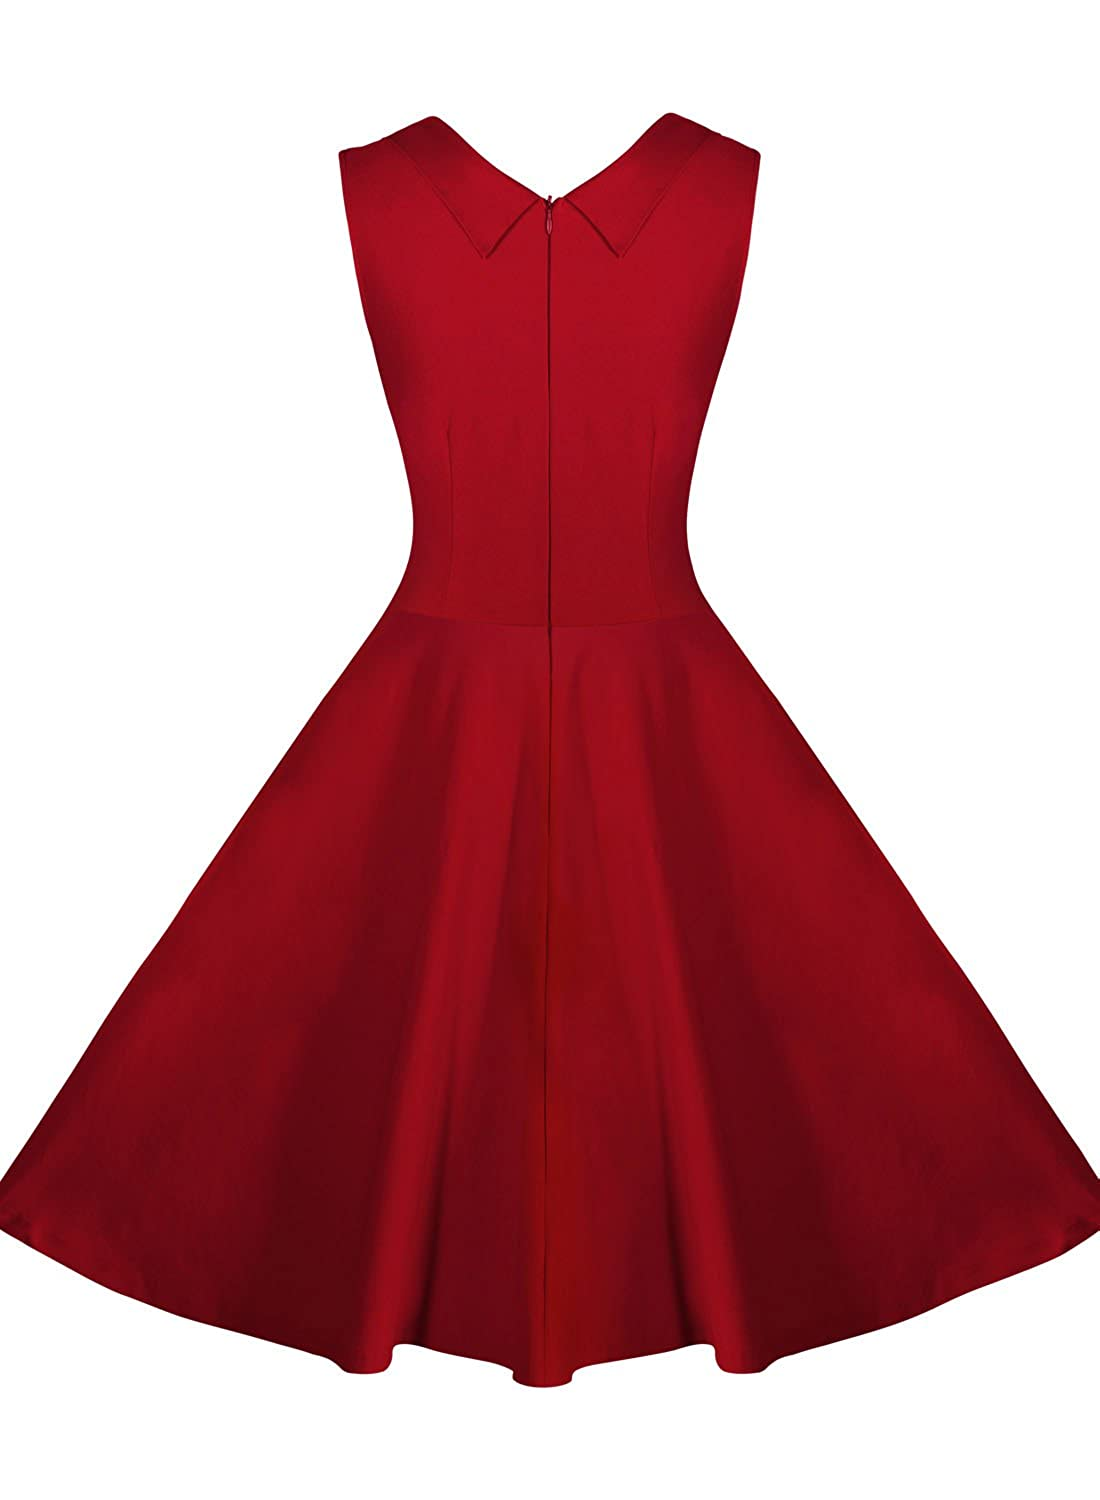 Miusol Womens Casual Cut Out V Neck Vintage 1950S Retro Party Dress 3237 Amazonca Clothing Accessories